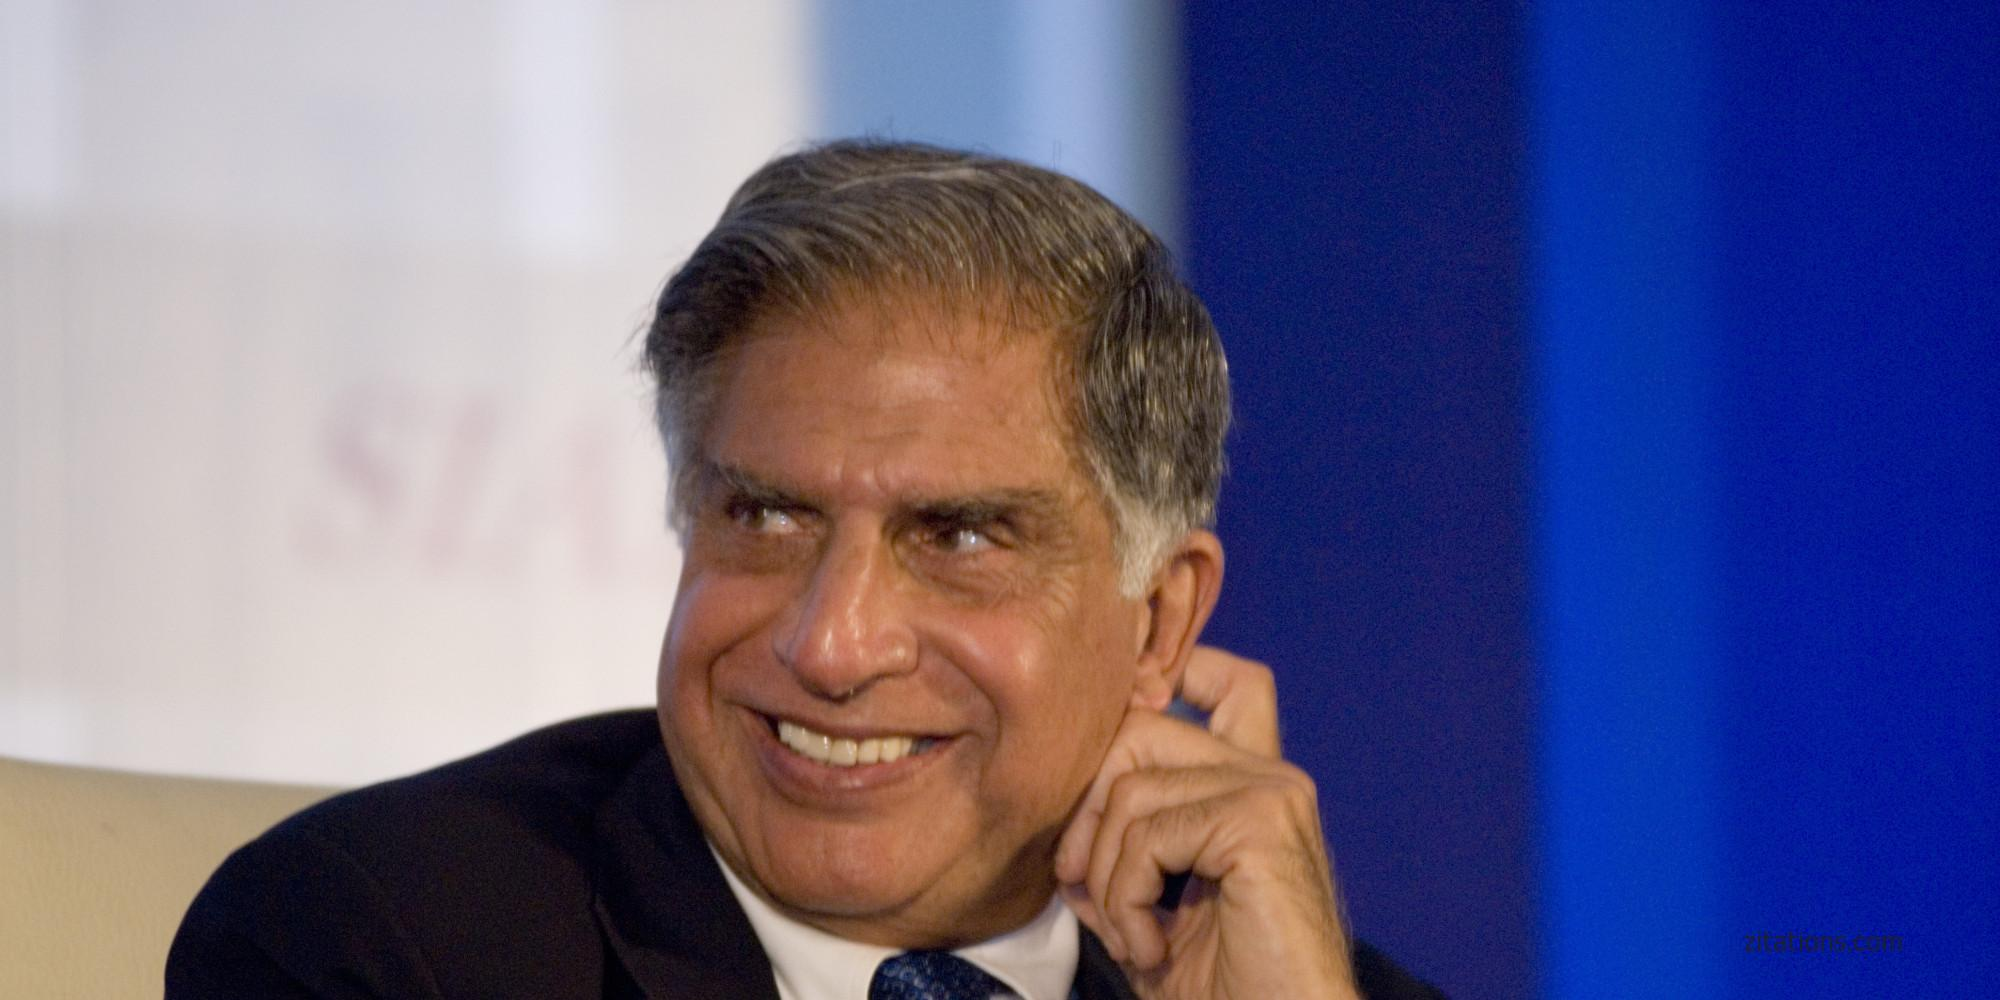 personality traits of ratan tata Personality traits, genes and you after analyzing steve jobs' life story, reading tens of articles about him and watching the movie jobs i managed to find out the personality traits that helped him succeed in life and leave a great impact.